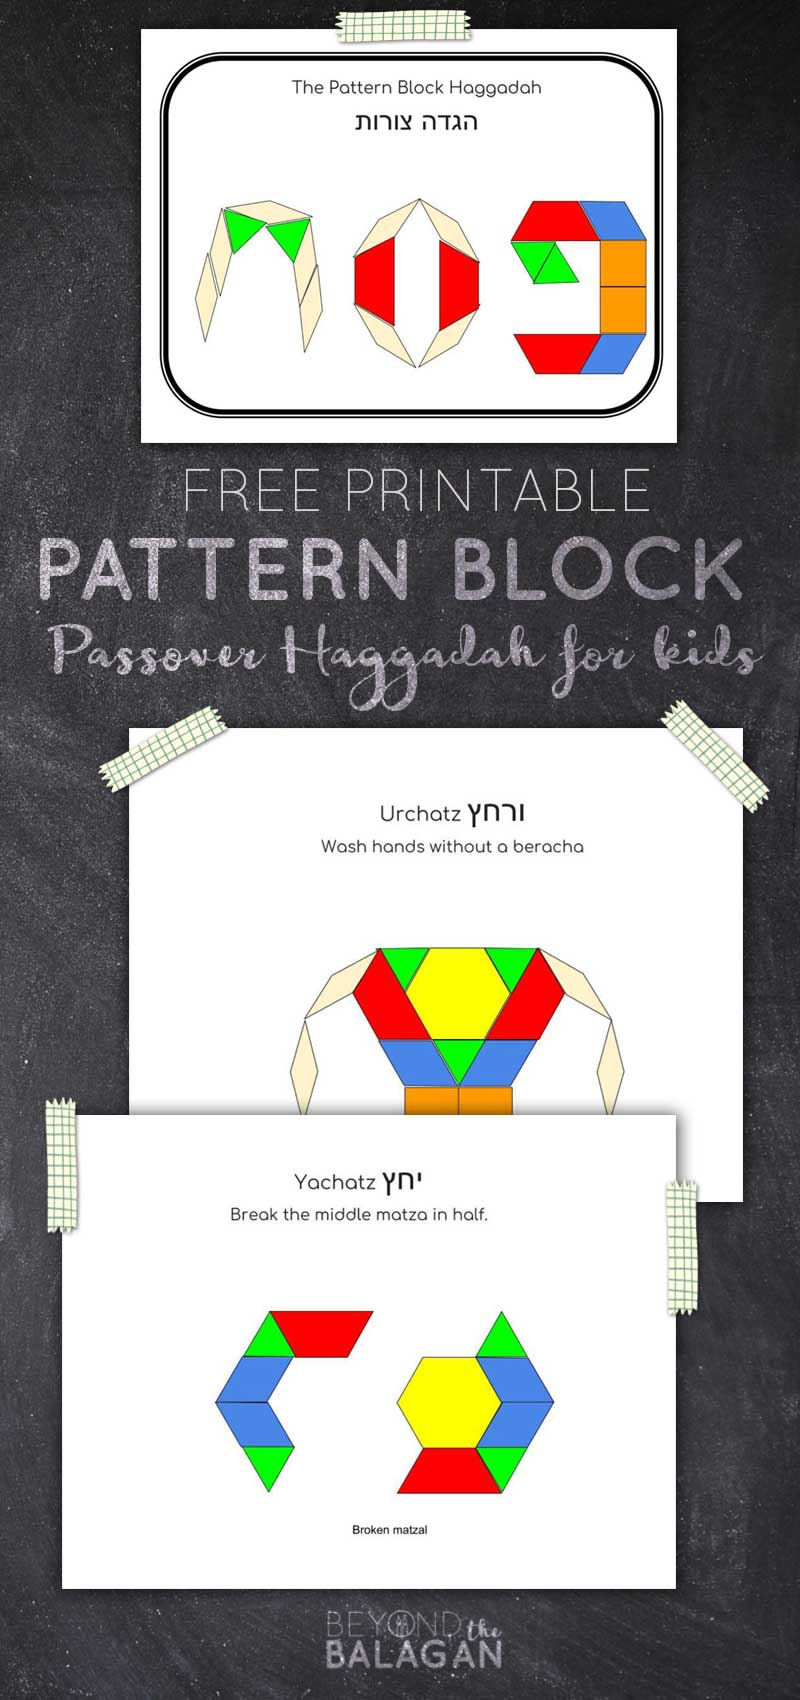 graphic relating to Printable Pattern Blocks named Absolutely free Printable Practice Blocks Haggadah for young children - Jewish